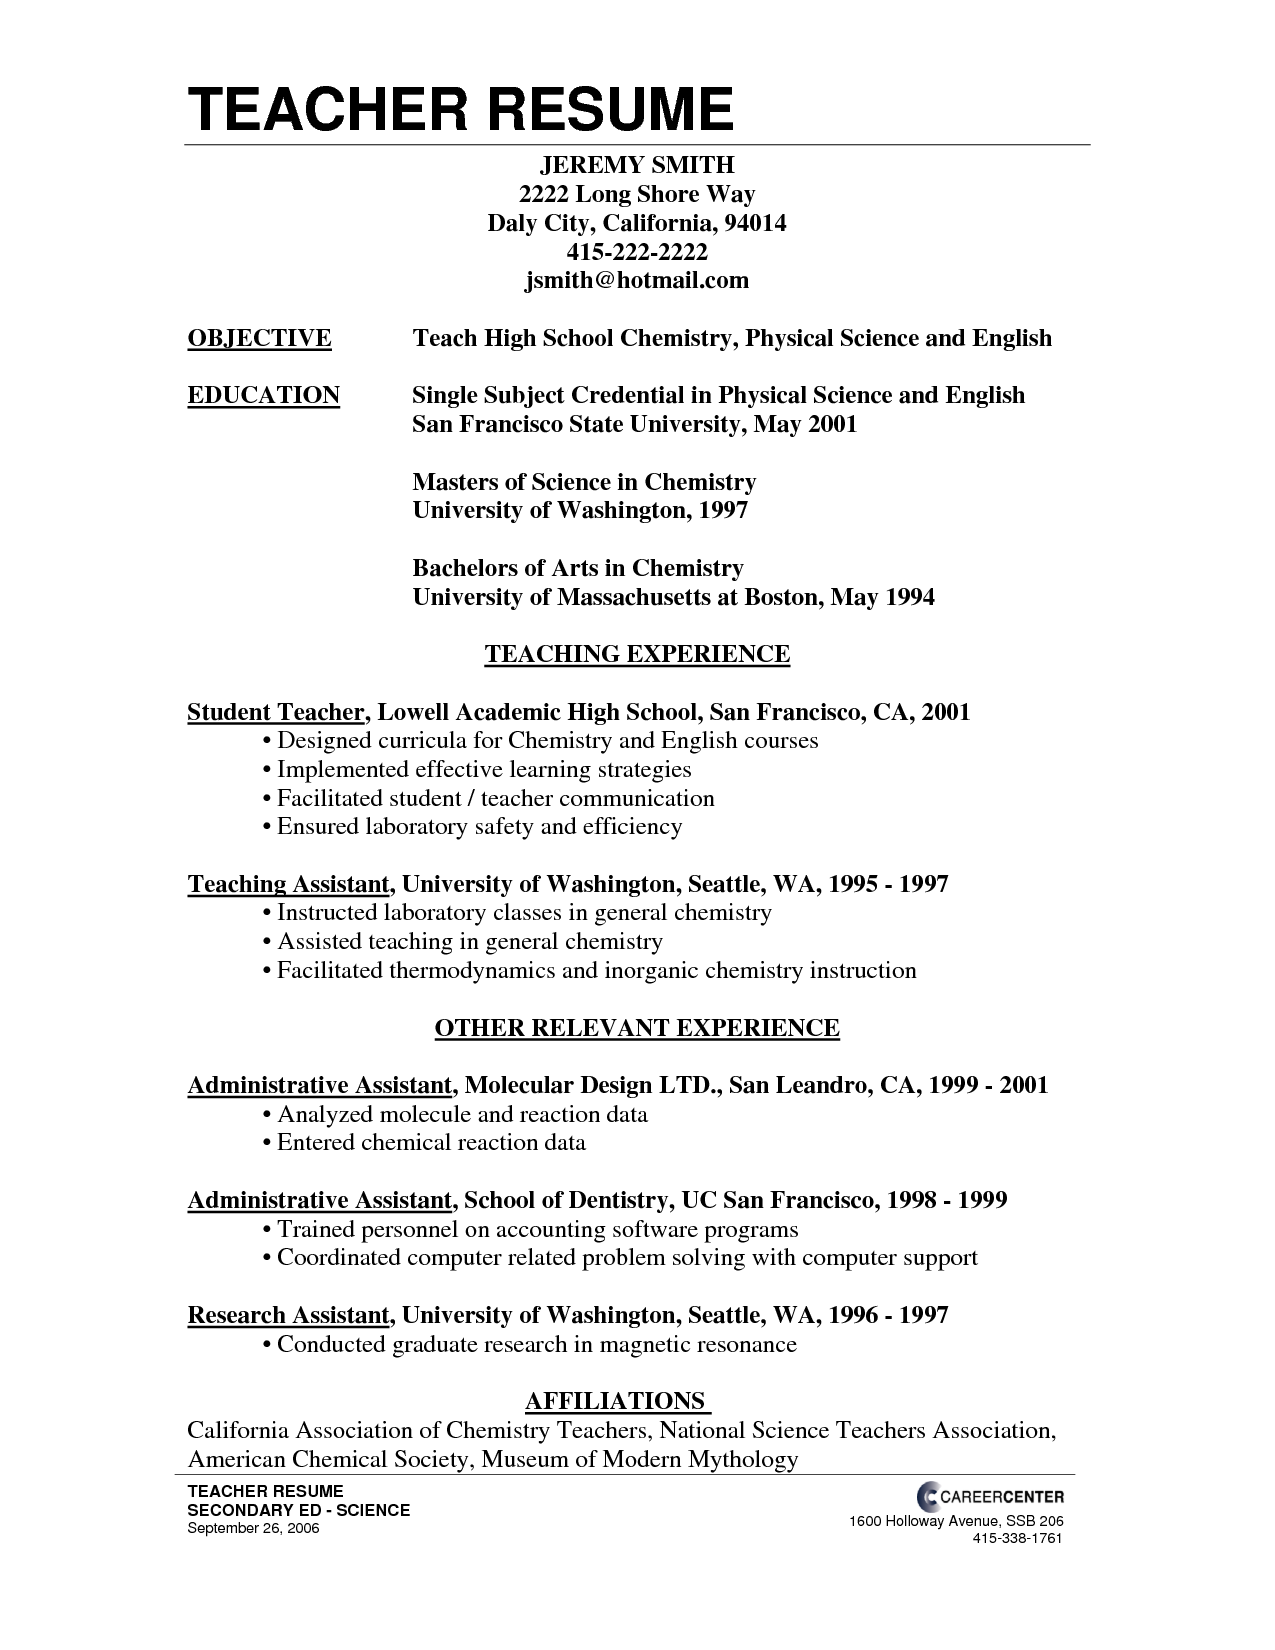 Pin von teachers_resumes auf teachers-resumes | Pinterest